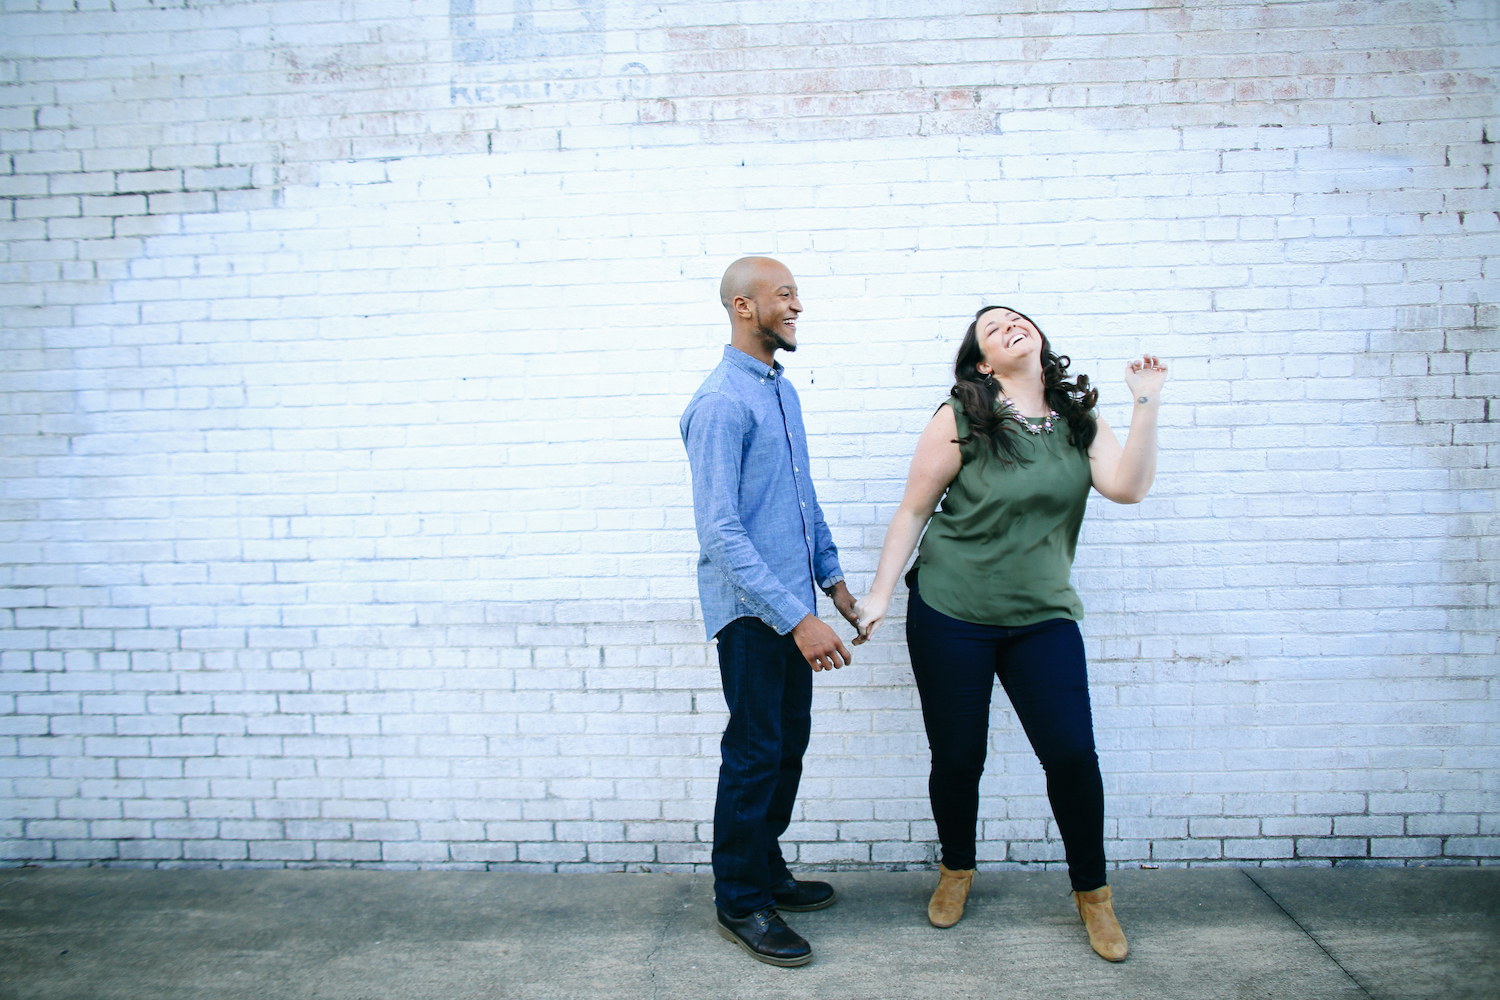 Our ampersand photographer taking pictures for their chattanooga engagement and wedding